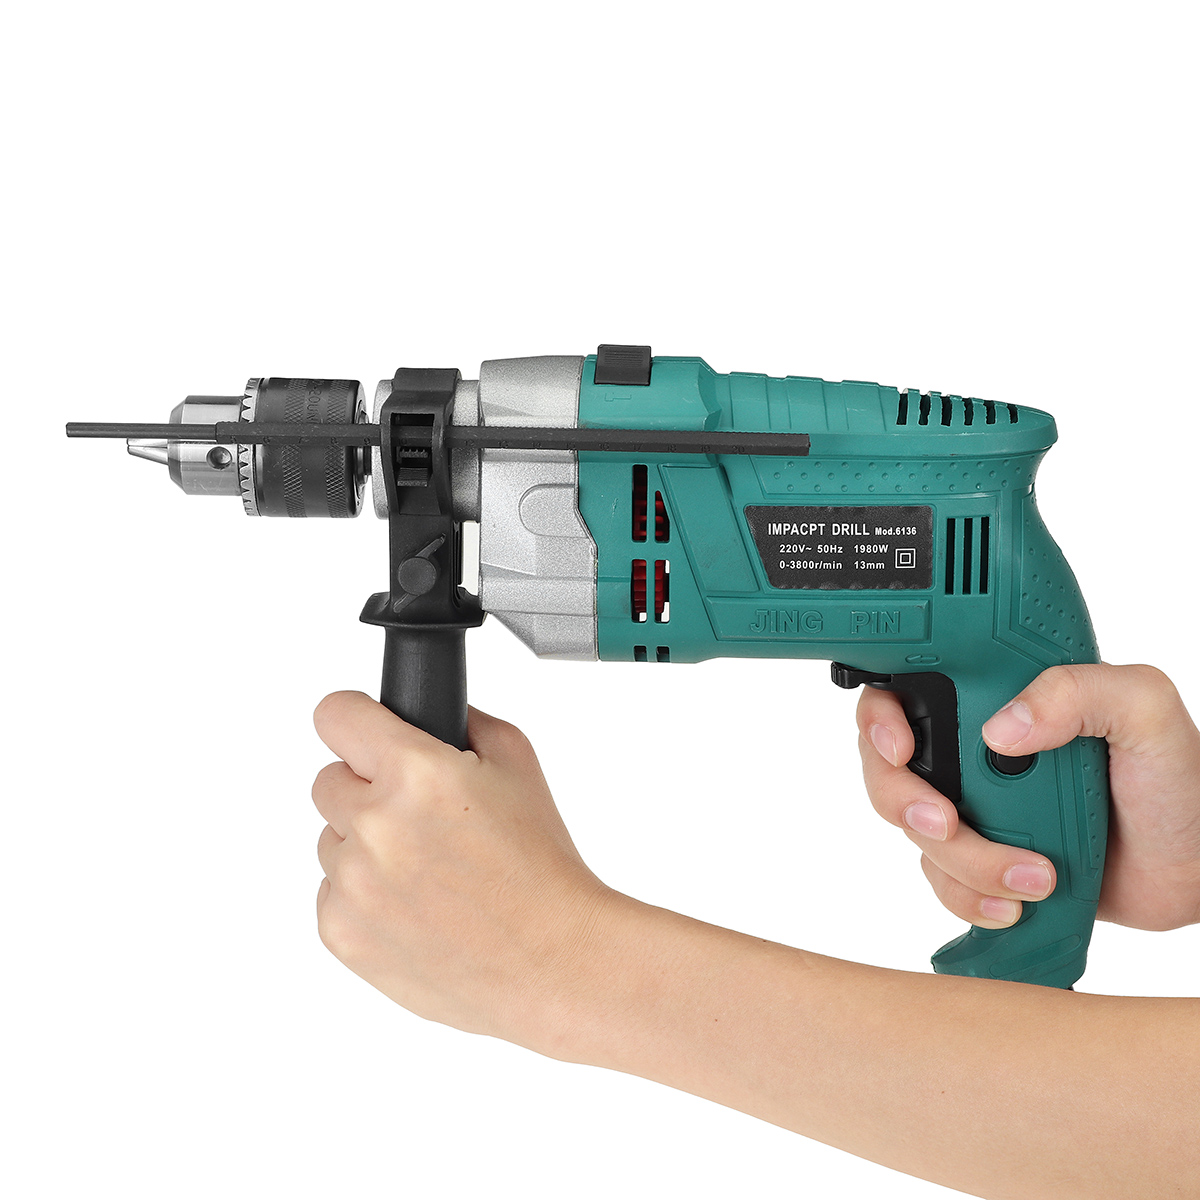 Tools : Drillpro 1980W 3800rpm 220V Electric Impact Drill Kit Handheld Flat Drill Rotary Hammer Multifunction   Scale Wrench Handle Bar